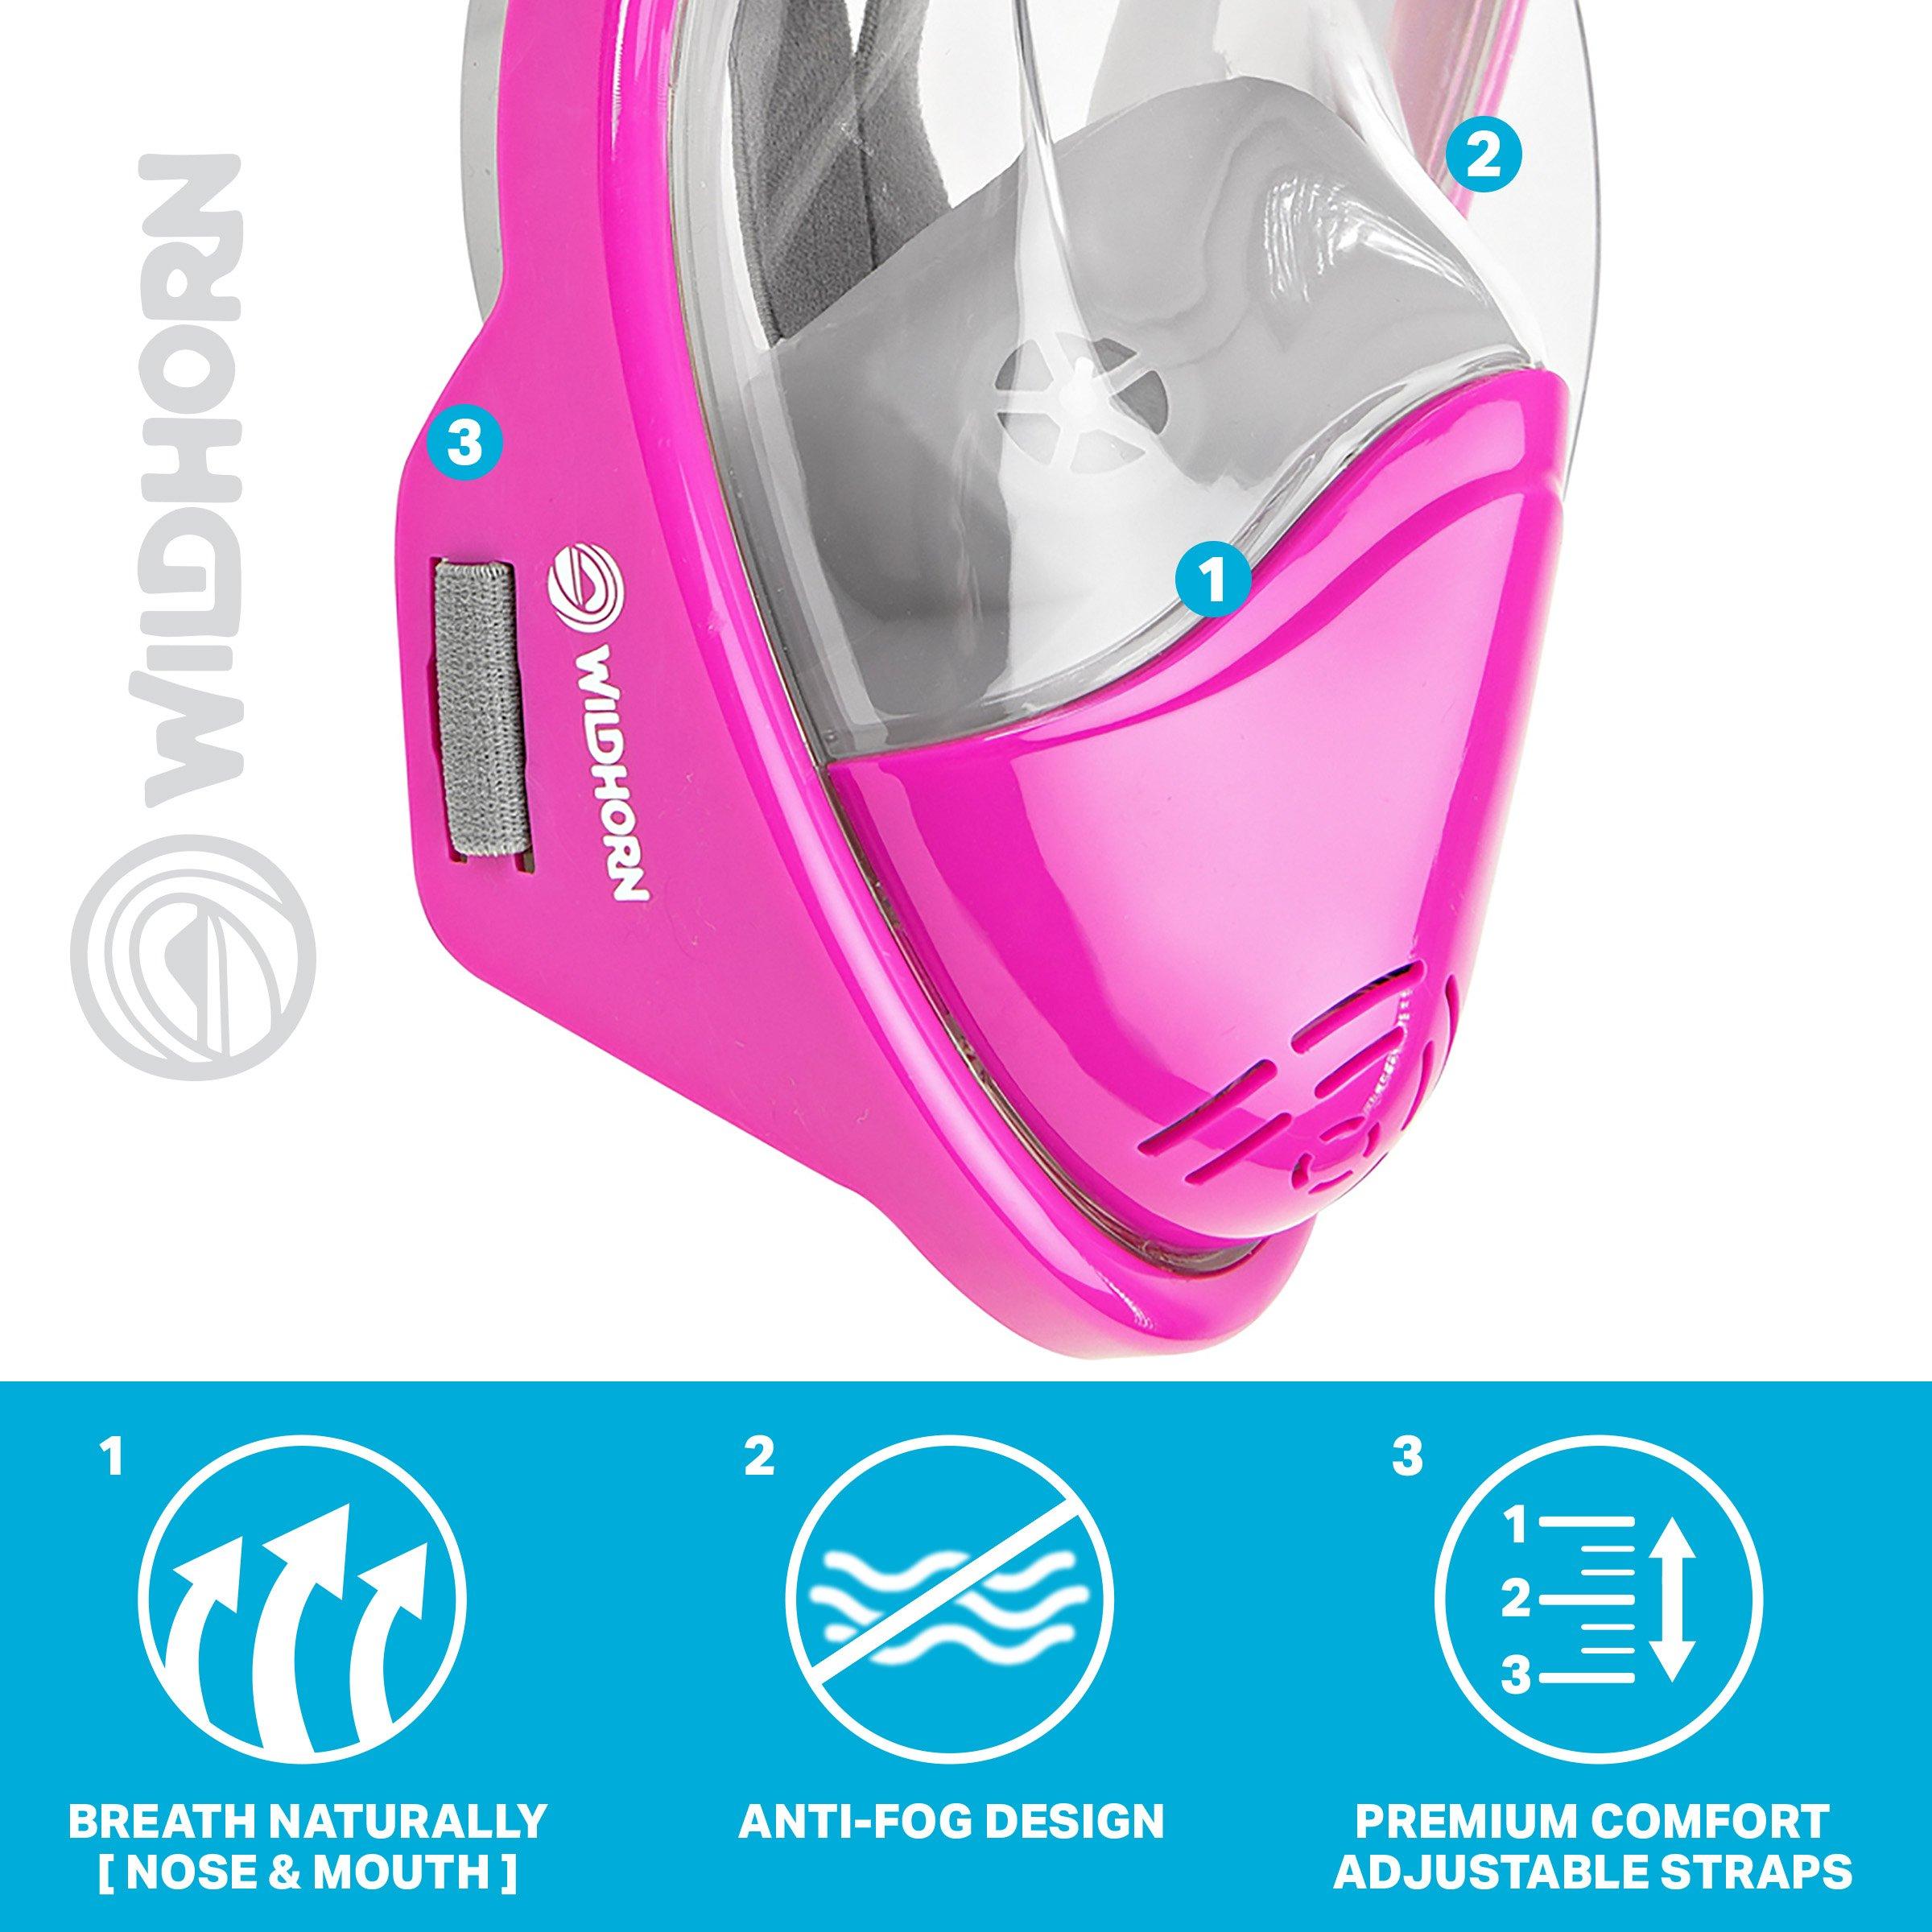 Seaview 180° GoPro Compatible Snorkel Mask- Panoramic Full Face Design. See More With Larger Viewing Area Than Traditional Masks. Prevents Gag Reflex with Tubeless Design (Lotus, S/M) by WildHorn Outfitters (Image #5)